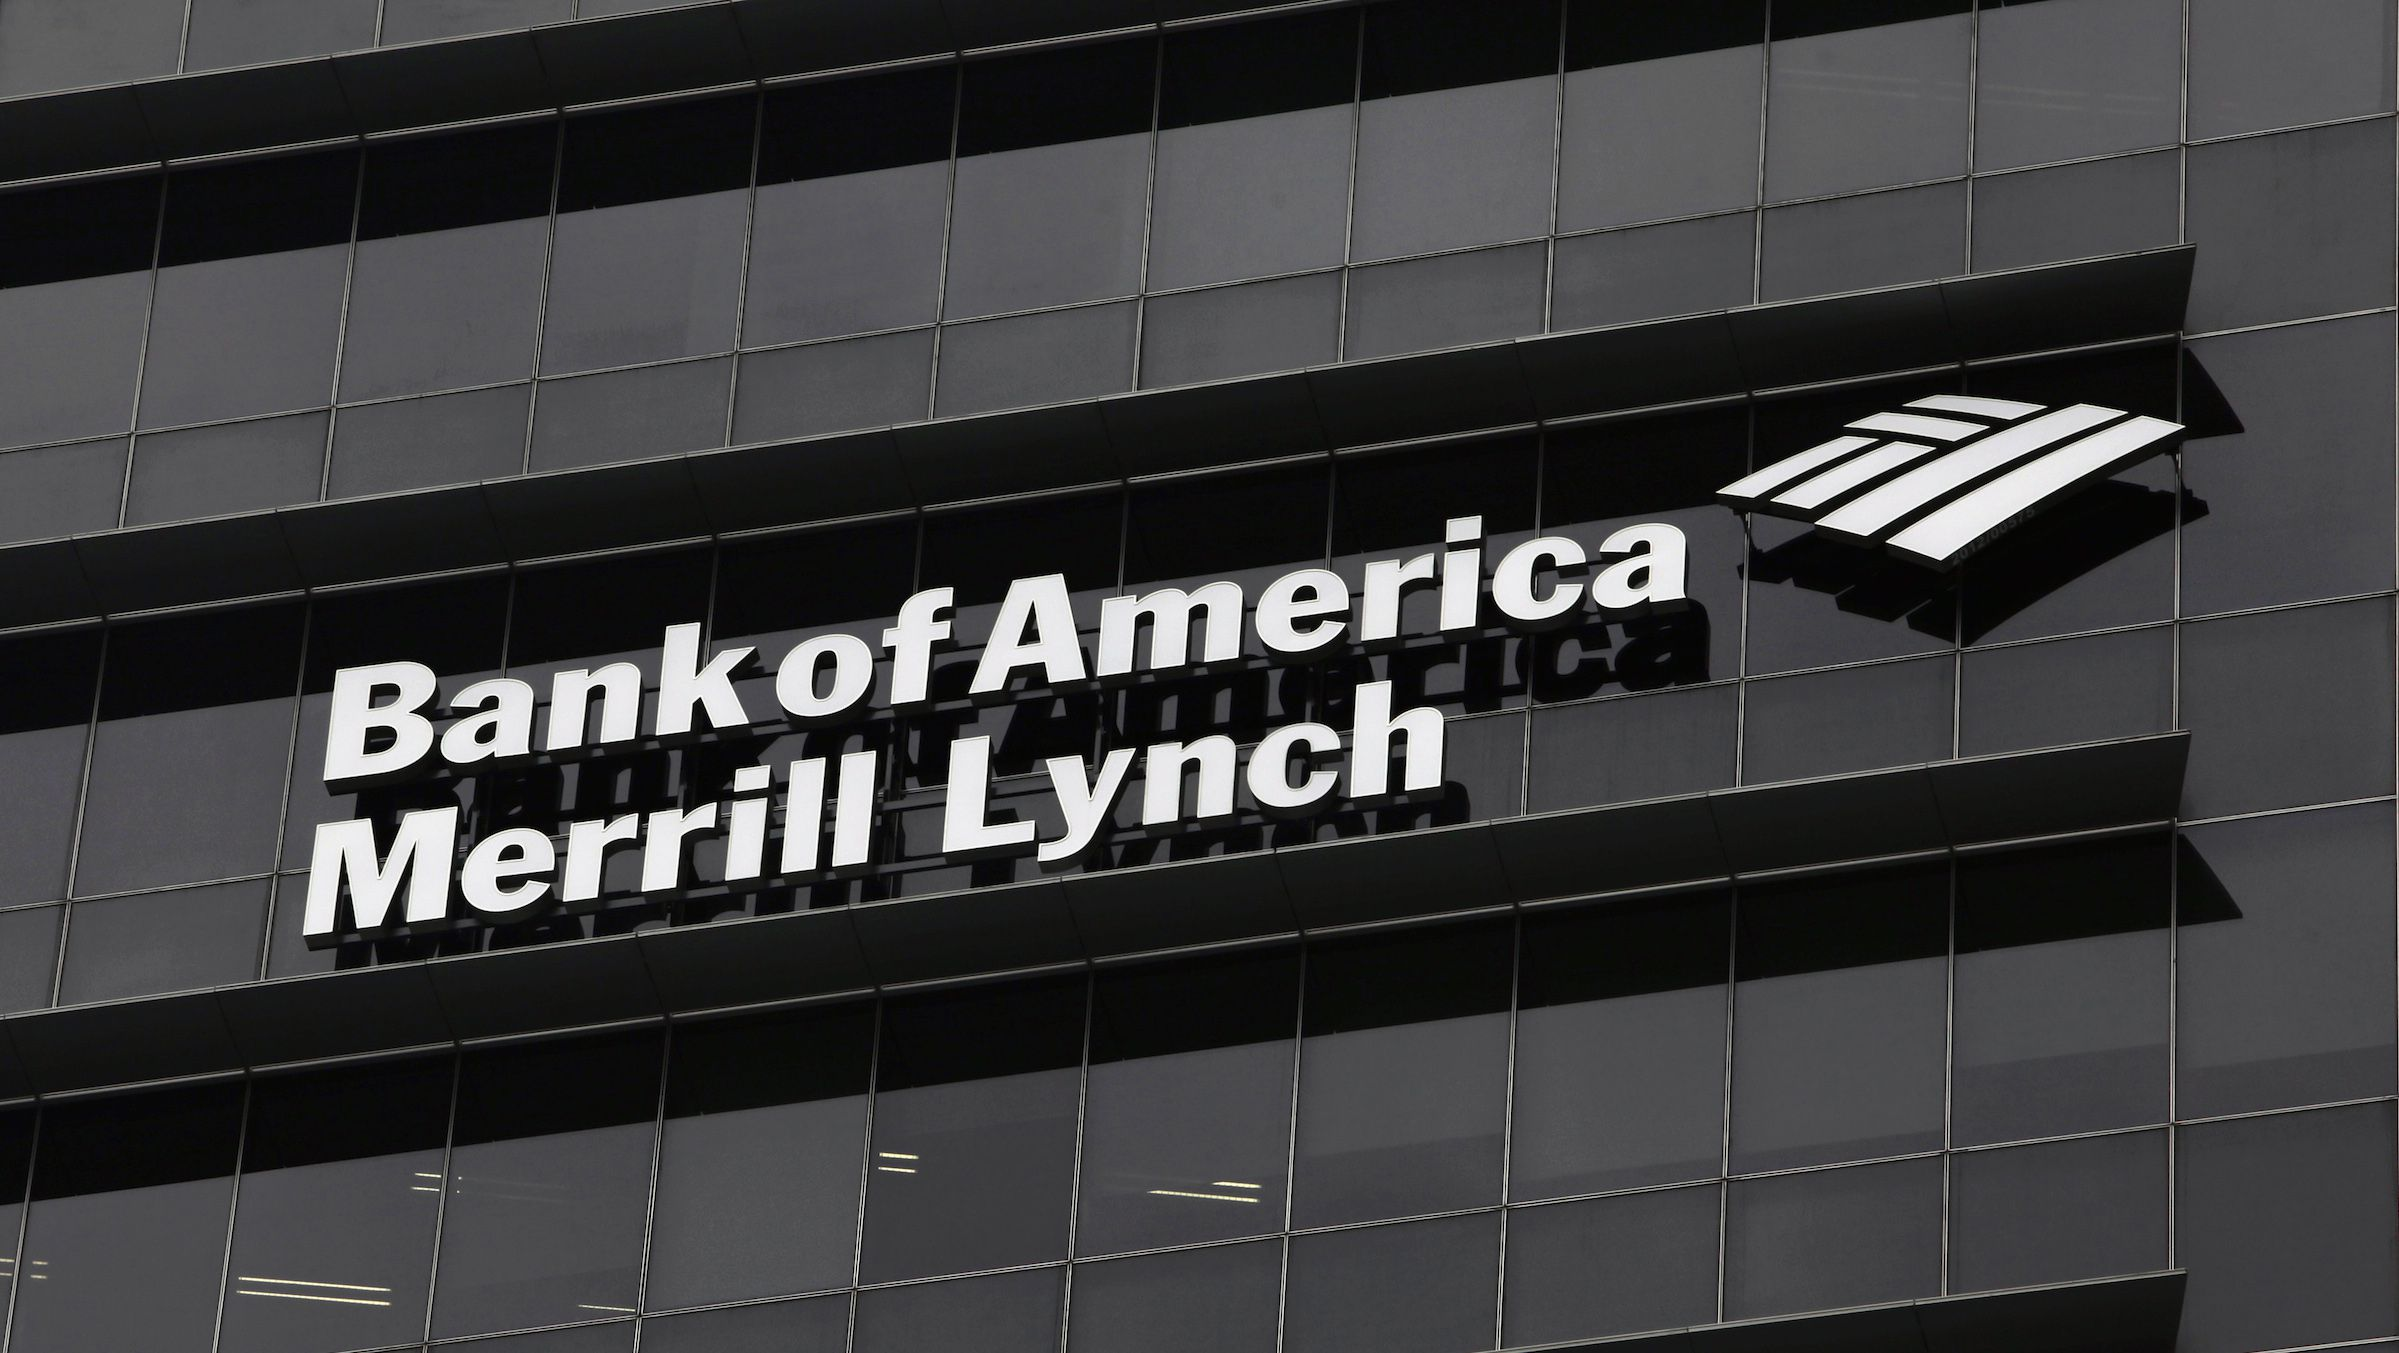 A Bank of America Merrill Lynch sign is seen on a building that houses its offices in Singapore May 17, 2012. Royal Bank of Canada and Credit Suisse are among the suitors seeking to bid for the non-U.S. wealth management businesses of Bank of America Merrill Lynch, sources told Reuters, in a deal that could be worth around $2 billion. REUTERS/Tim Chong (SINGAPORE - Tags: BUSINESS LOGO) - RTR326LT